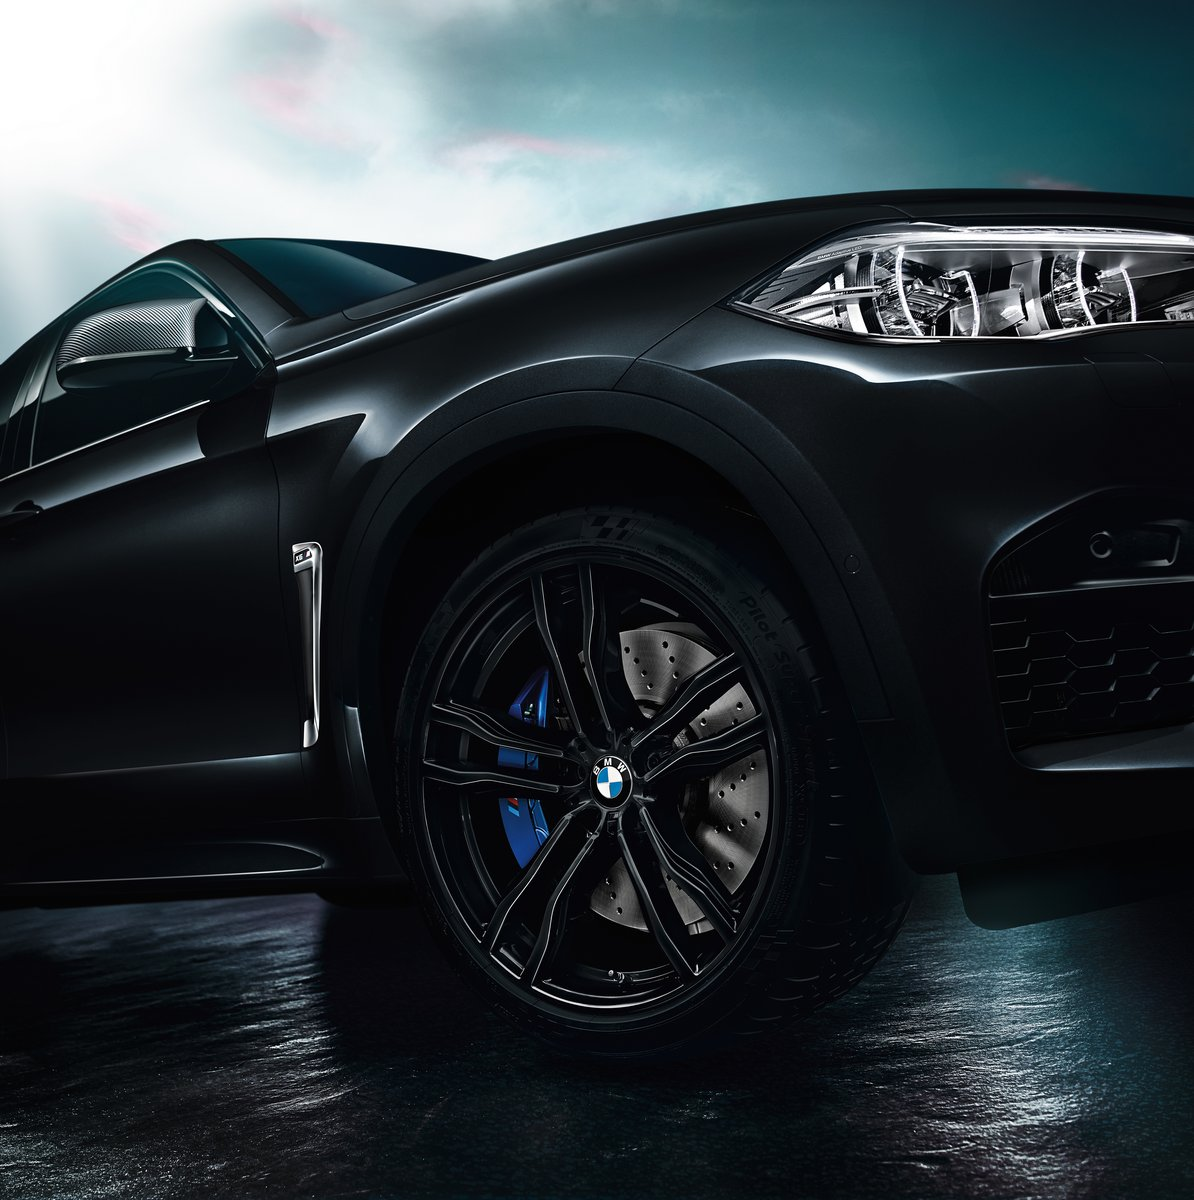 BMW-X5-M-Black-Fire-Edition-9